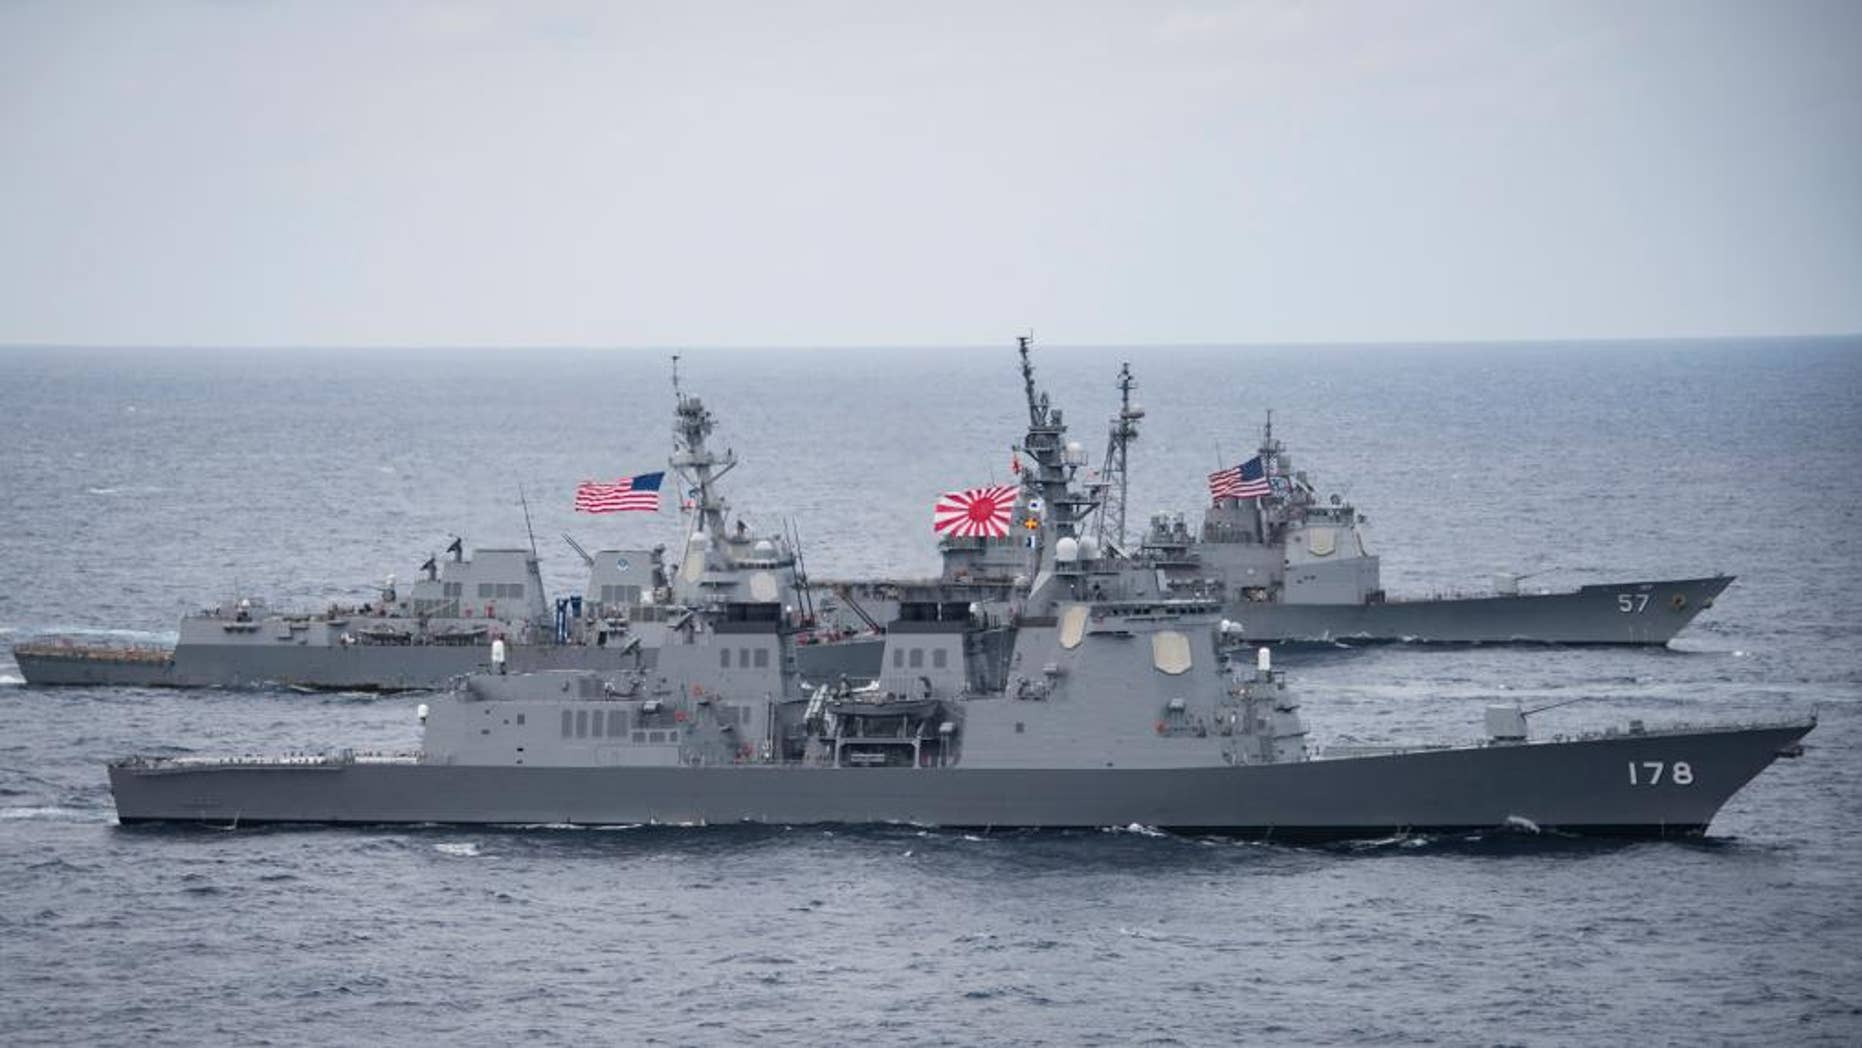 In this Friday, April 28, 2017 photo released by the U.S. Navy, the Japan Maritime Self-Defense Force destroyer JS Ashigara (DDG 178), foreground, the Arleigh Burke-class guided-missile destroyer USS Wayne E. Meyer (DDG 108), center, and the Ticonderoga-class guided-missile cruiser USS Lake Champlain (CG 57) transit the Philippine Sea as they accompany the Nimitz-class aircraft carrier USS Carl Vinson (CVN 70) for the ongoing joint exercises. (Mass Communication Specialist 2nd Class Z.A. Landers/U.S. Navy via AP)